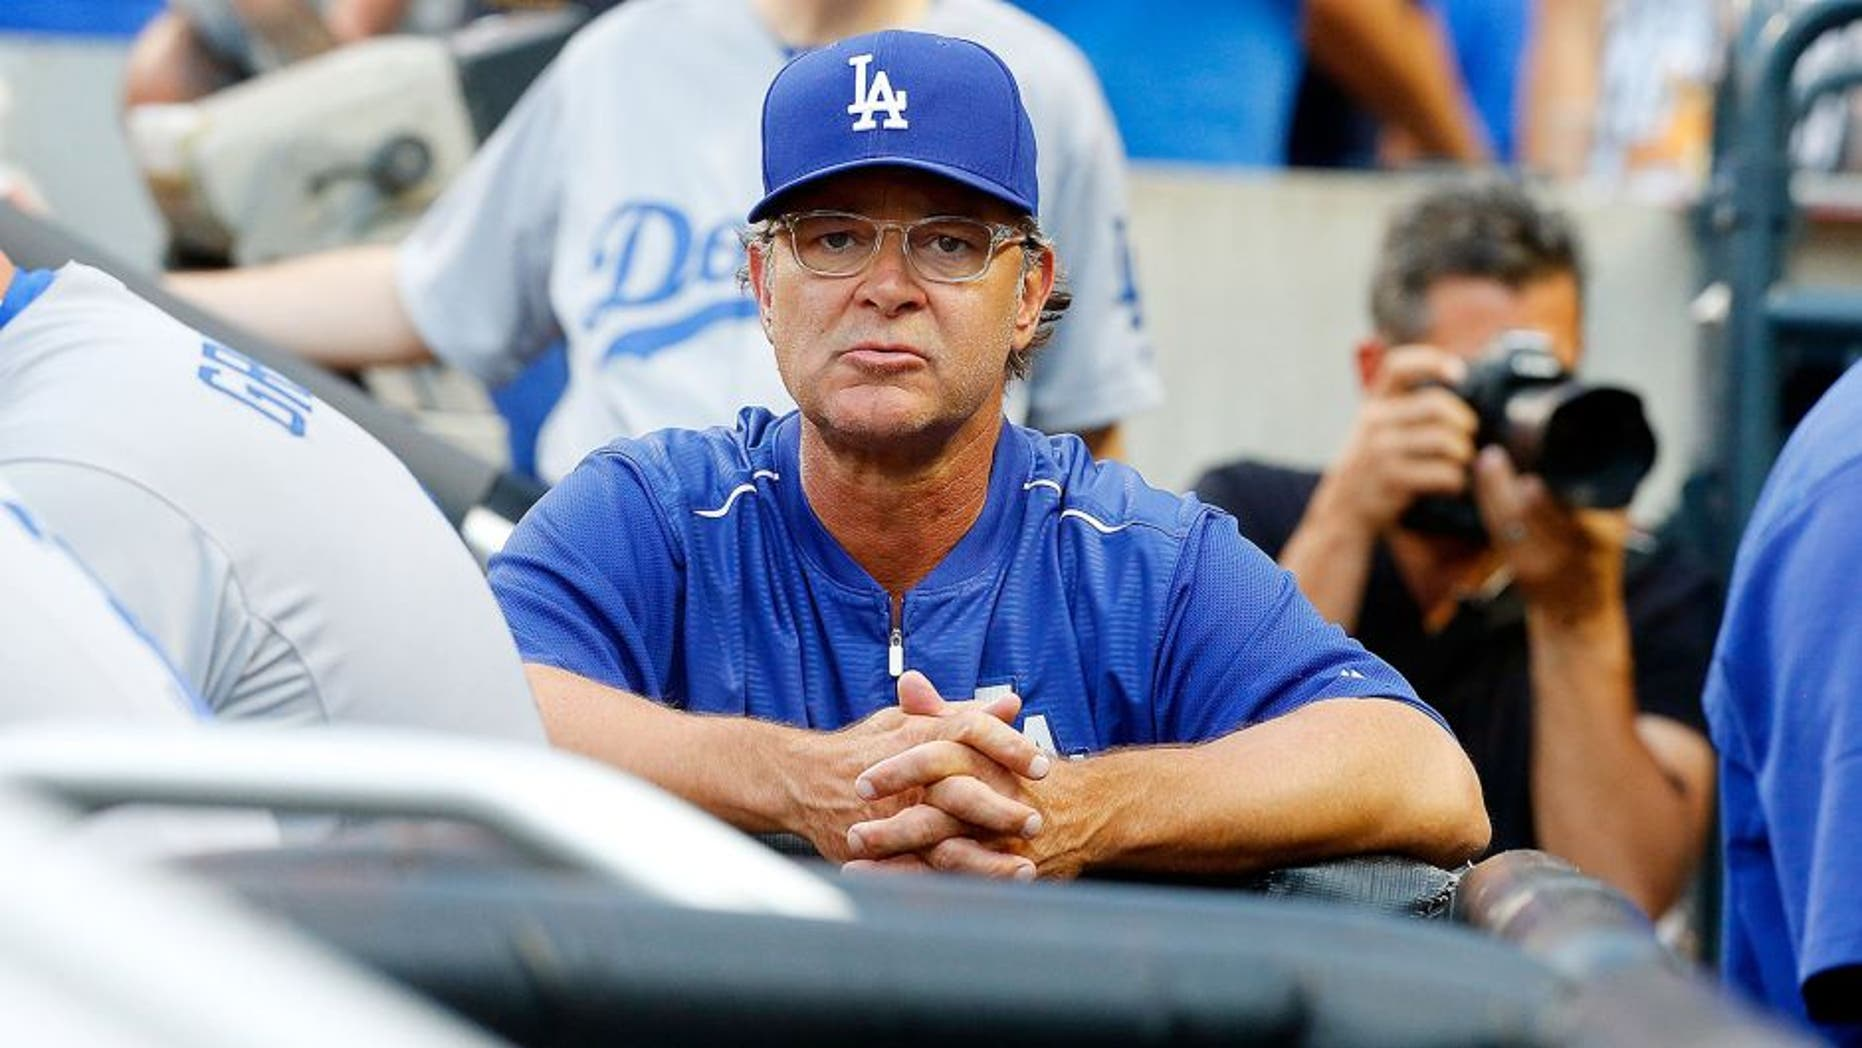 NEW YORK, NY - JULY 24: (NEW YORK DAILIES OUT) Manager Don Mattingly #8 of the Los Angeles Dodgers looks on against the New York Mets at Citi Field on July 24, 2015 in the Flushing neighborhood of the Queens borough of New York City. The Dodgers defeated the Mets 7-2. (Photo by Jim McIsaac/Getty Images)